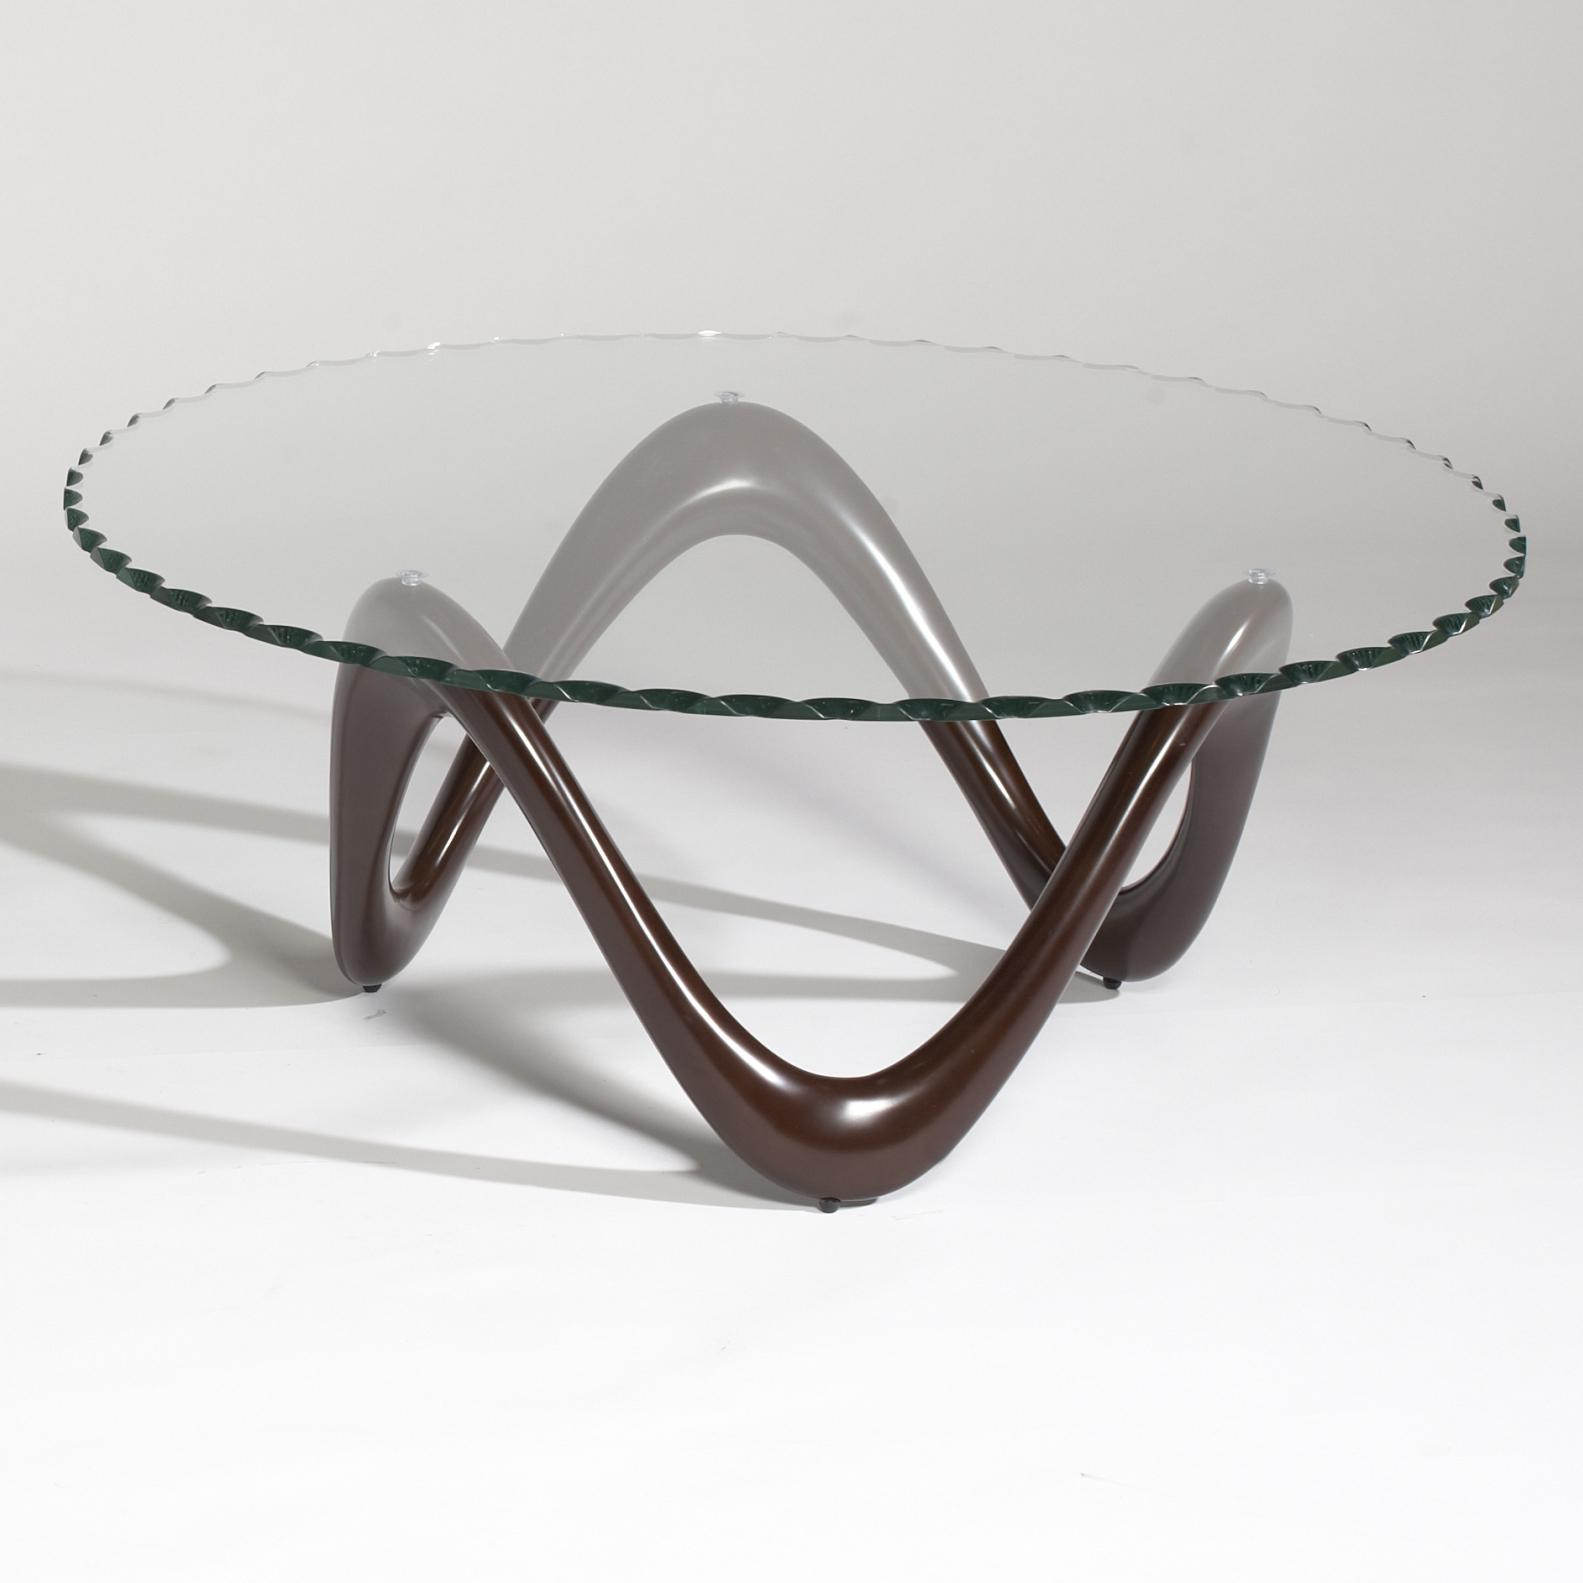 Chintaly Imports 1147 Cocktail Table - Item Number: 1147-CT-BRW-B+T